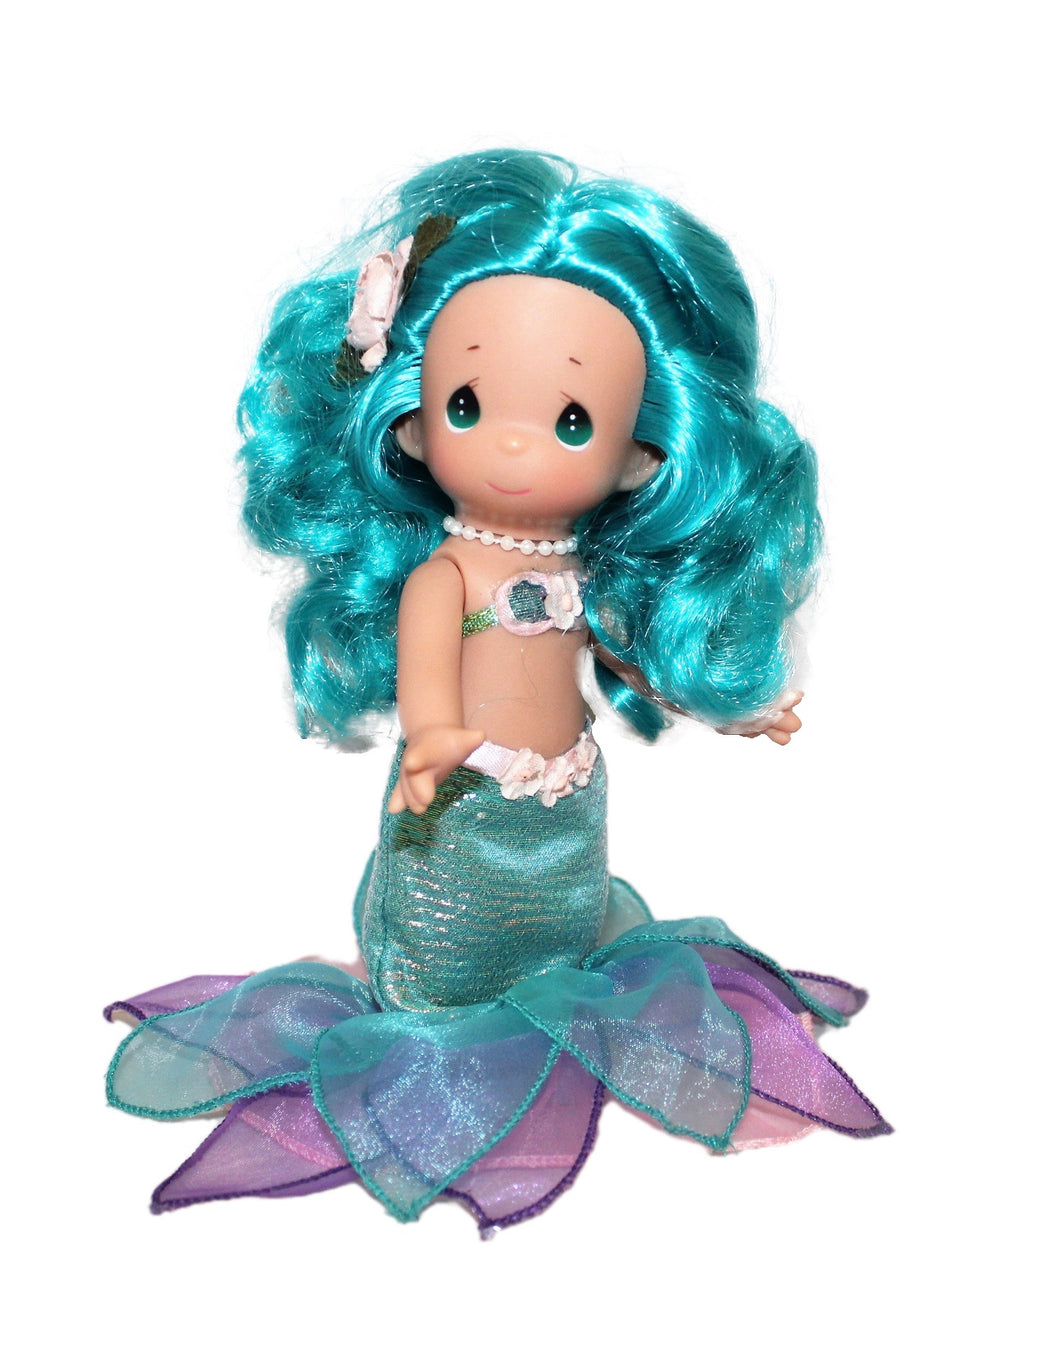 Mermaid Wishes & Starfish Kisses - Teal - 9 Inch Doll